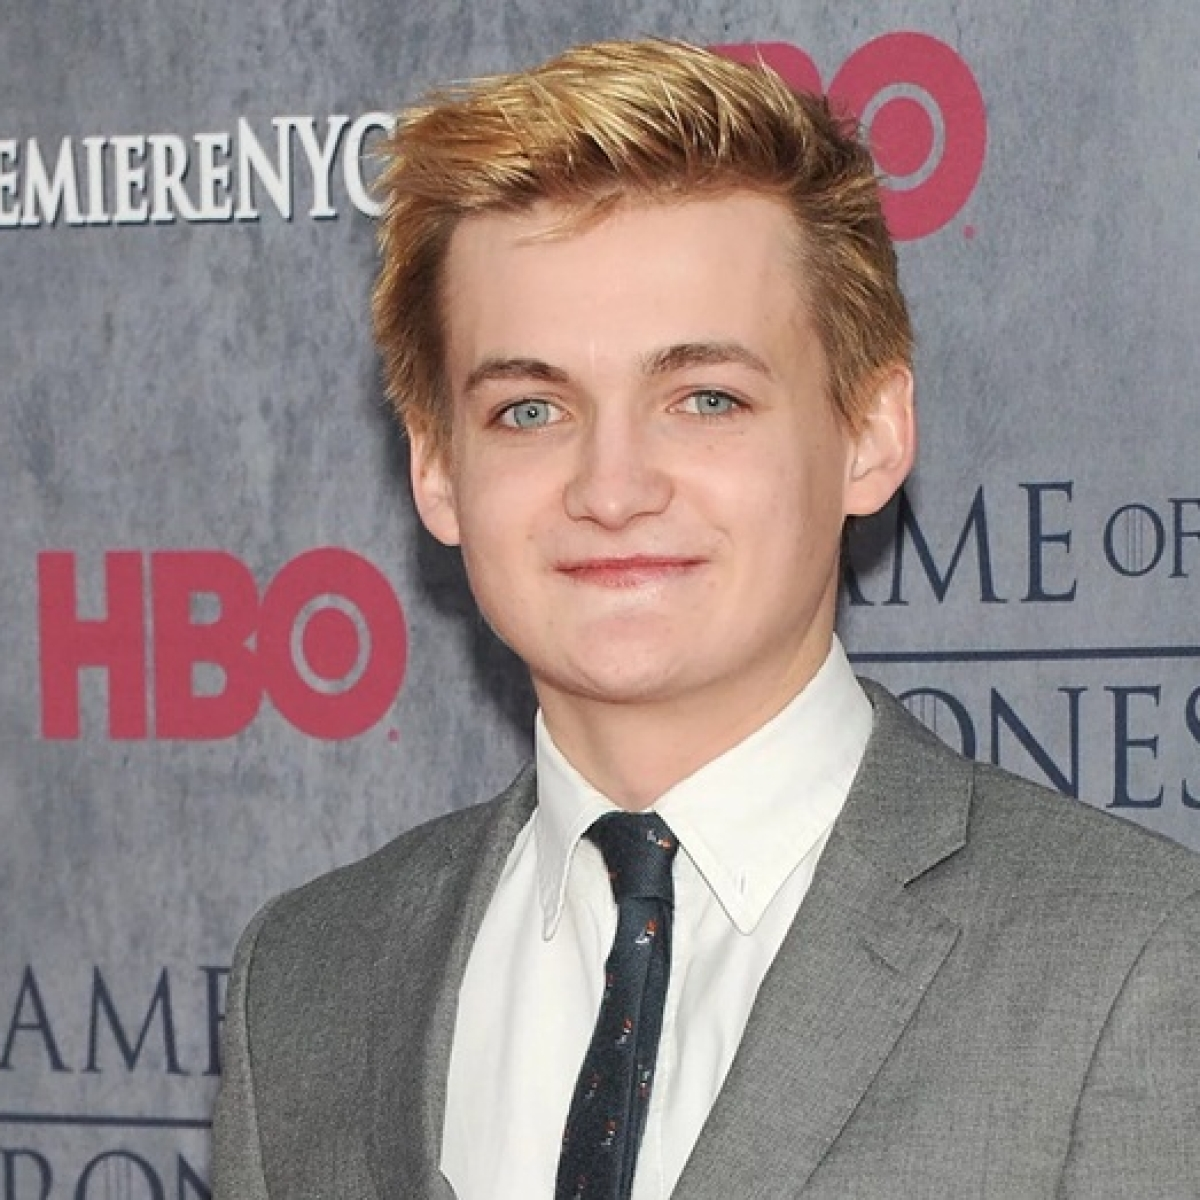 'Game of Thrones' star Jack Gleeson aka King Joffery to be back on TV with comedy show